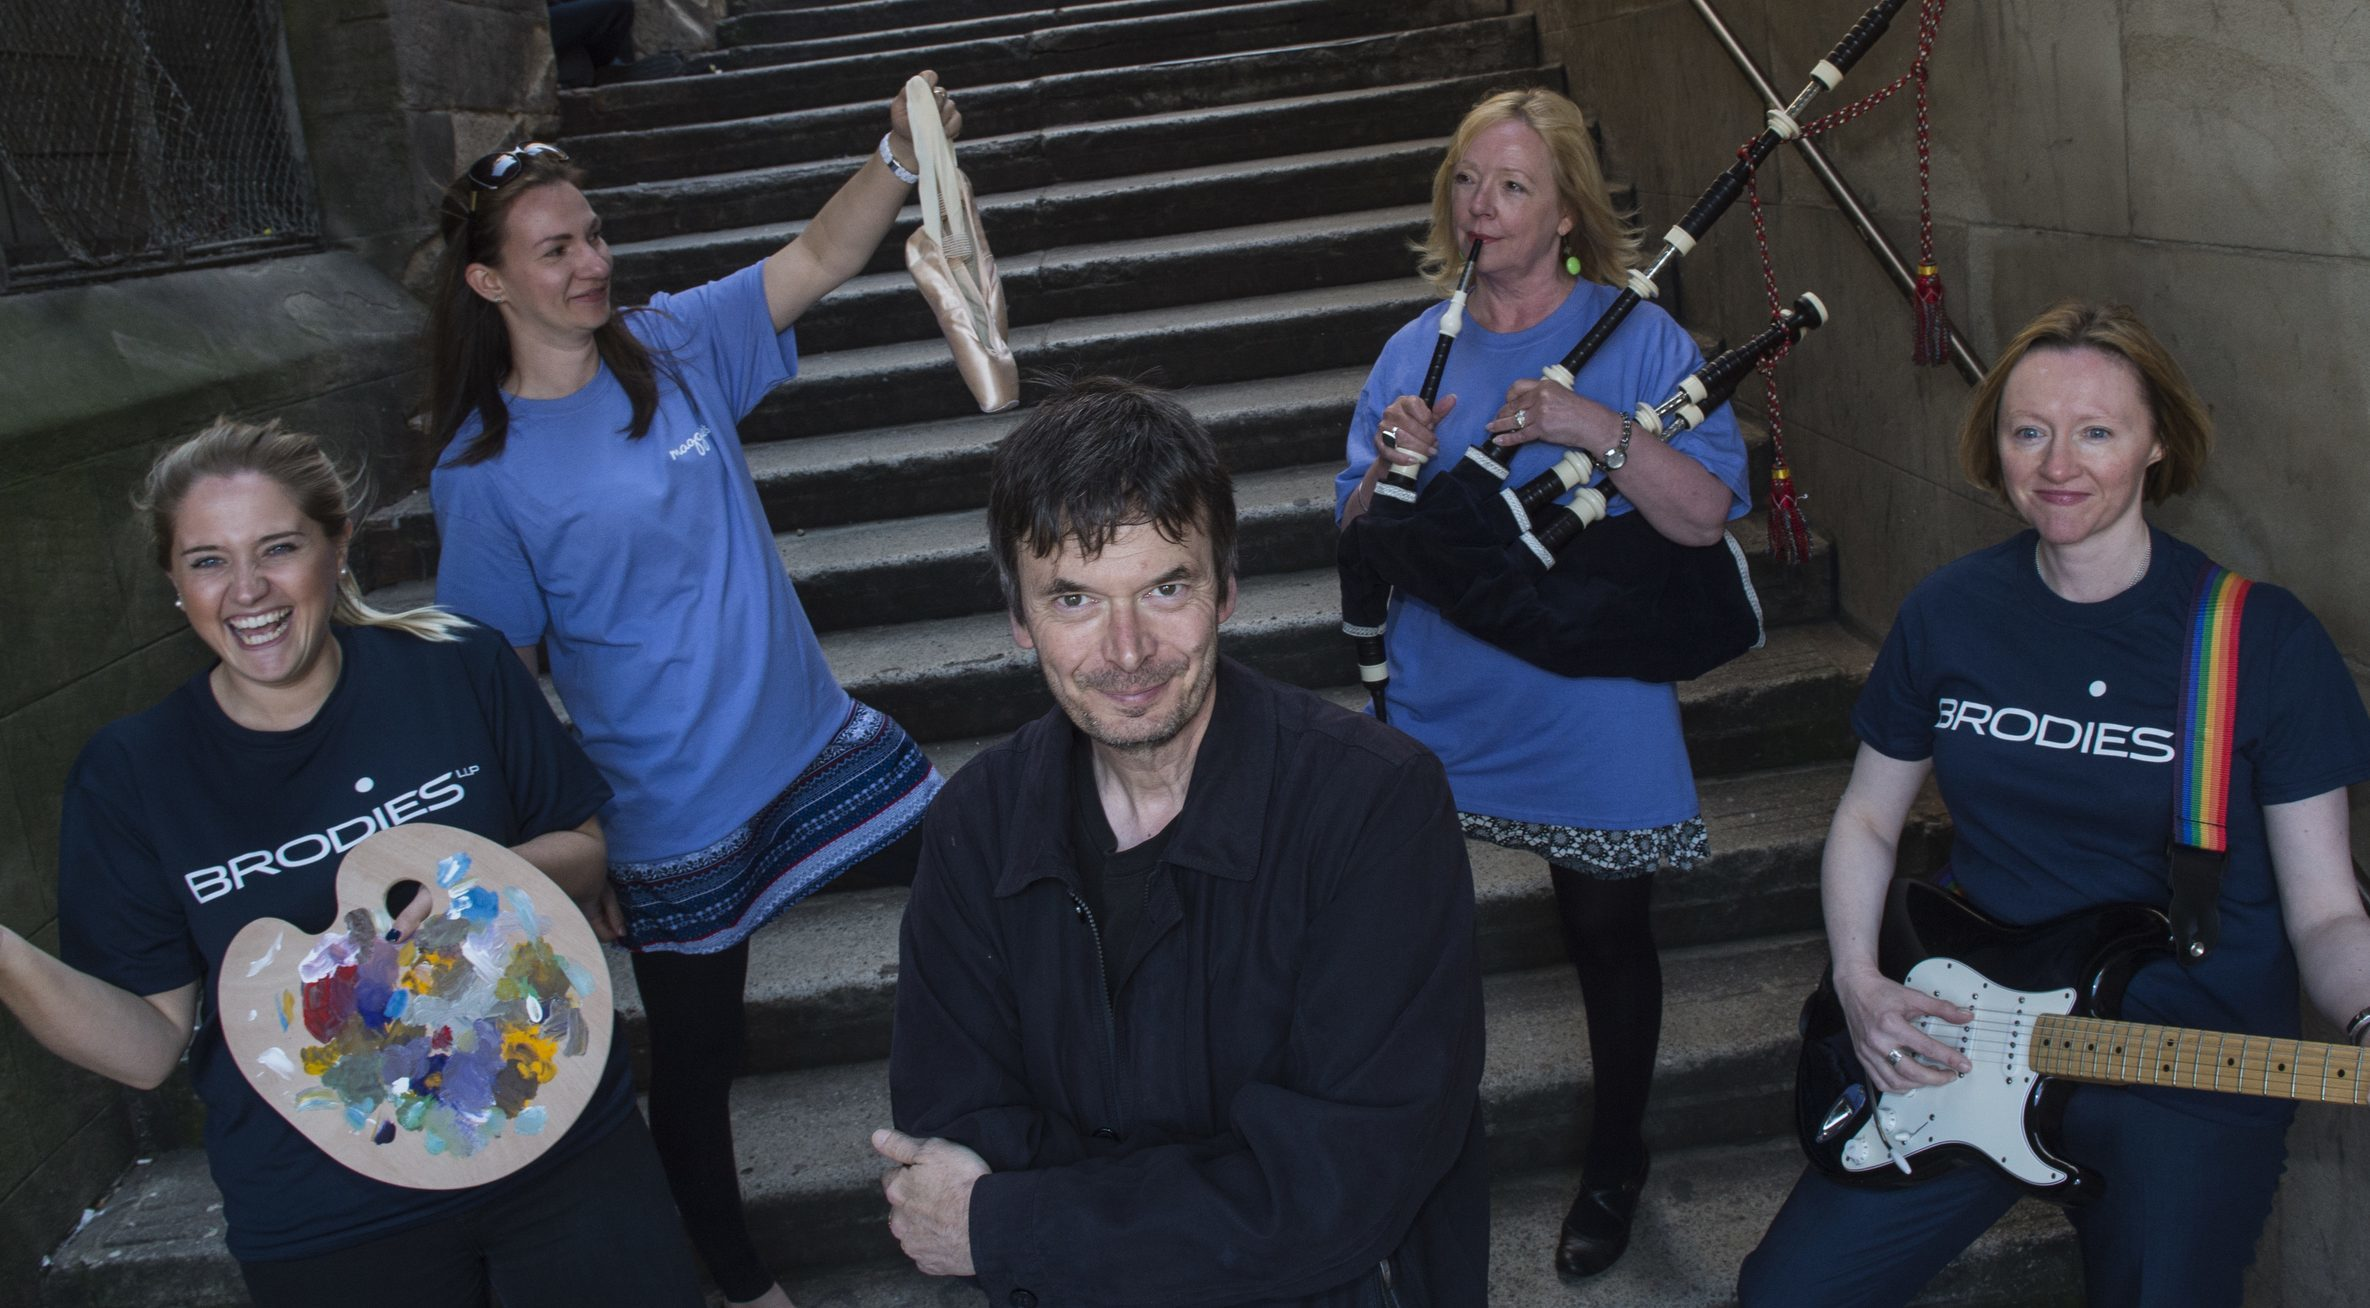 Ian Rankin is launching Maggies Culture Crawl events